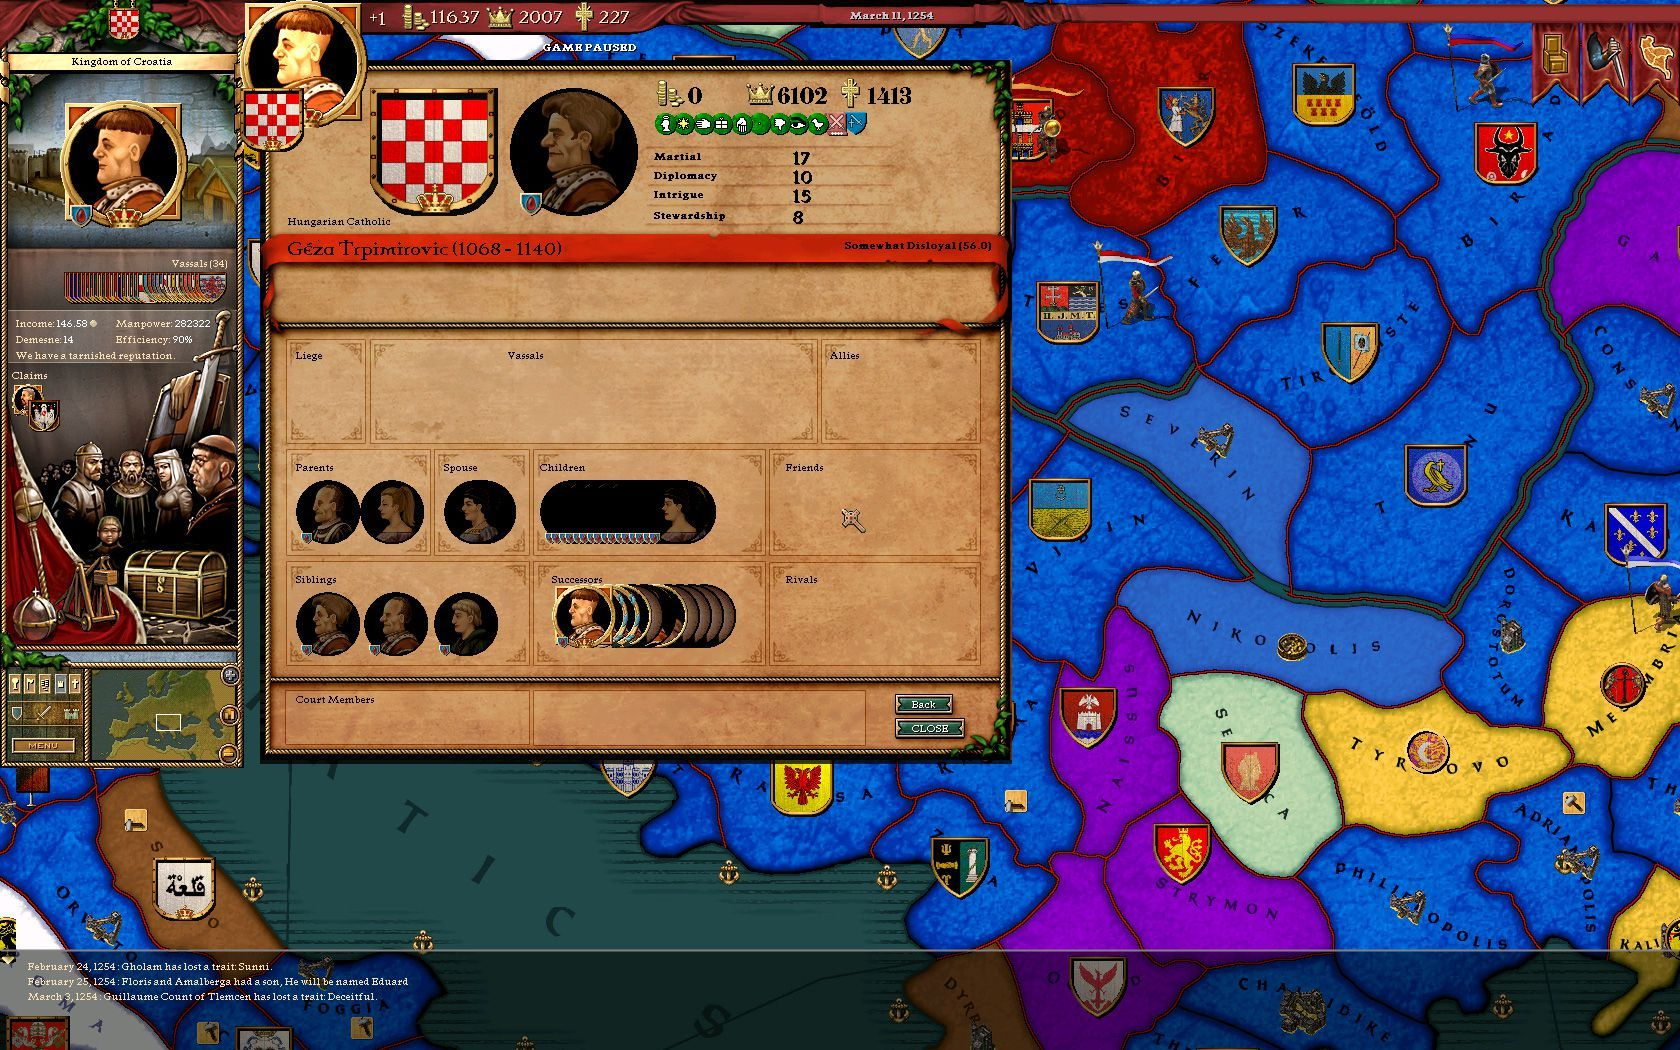 Love, Marriage, and Courtship in Crusader Kings II - A